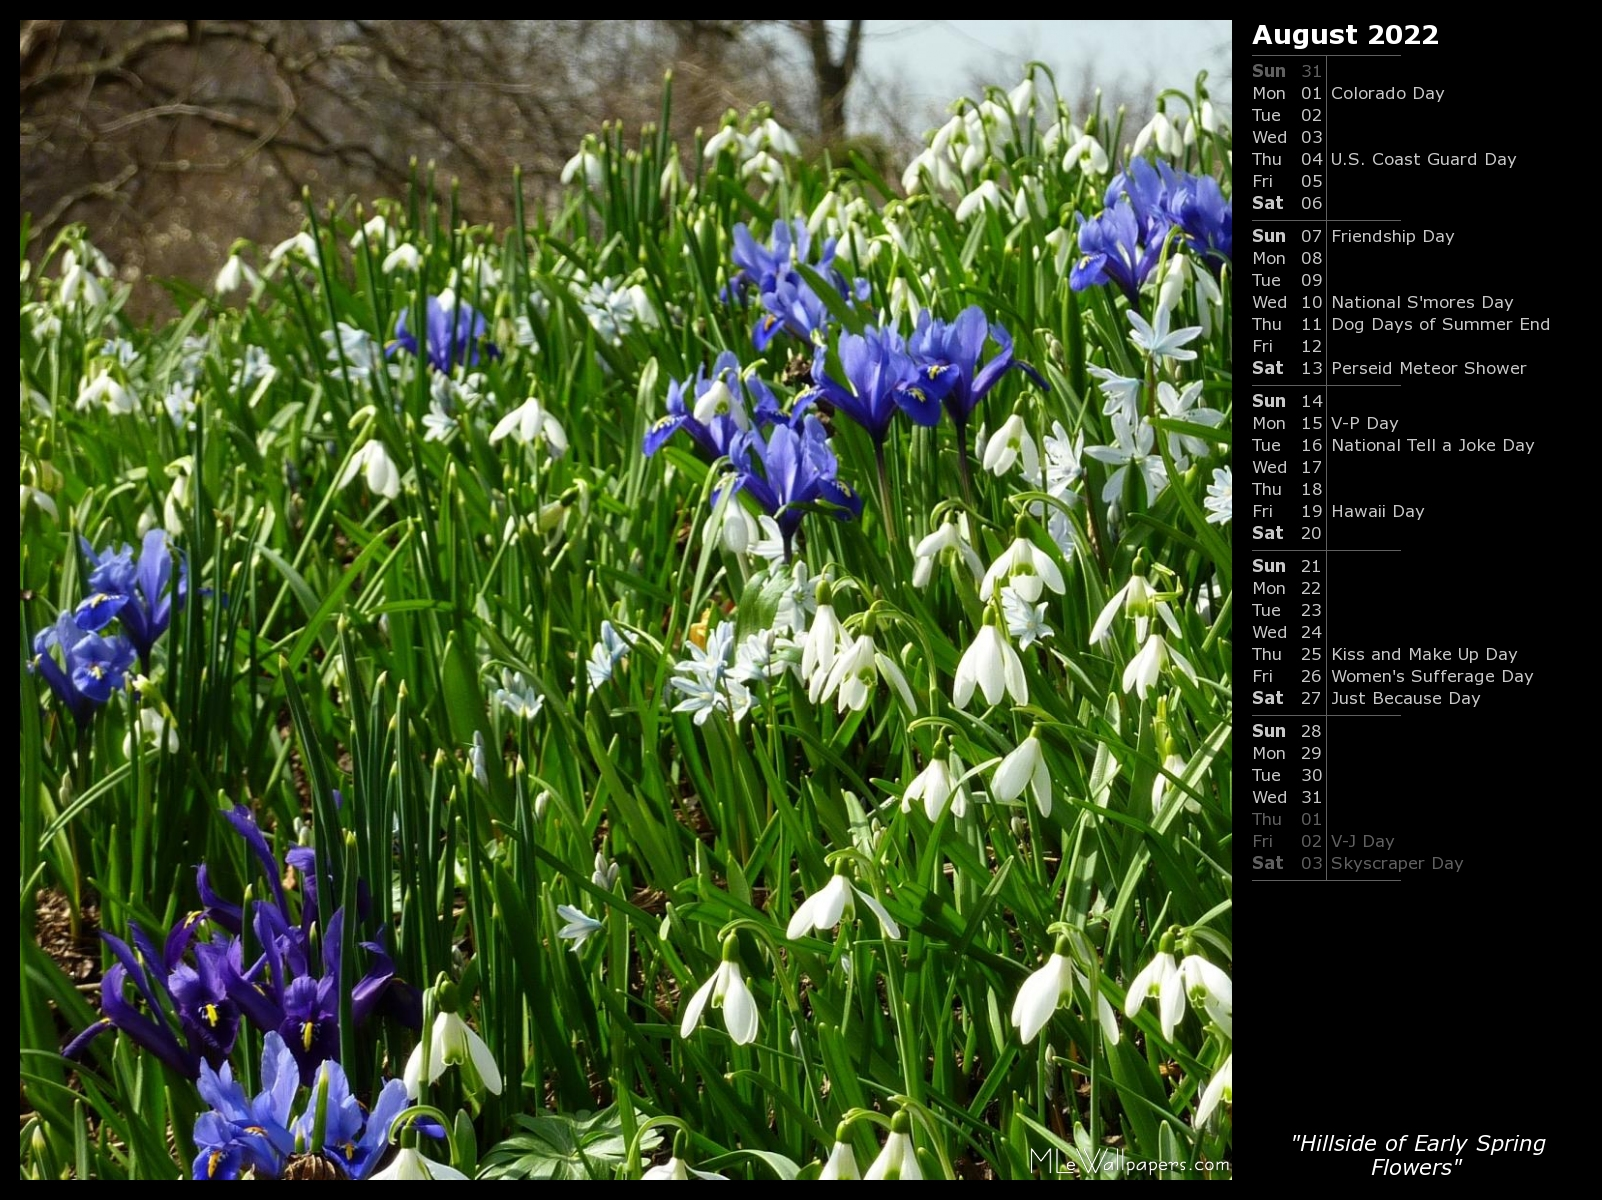 Mlewallpapers Com Hillside Of Early Spring Flowers Calendar